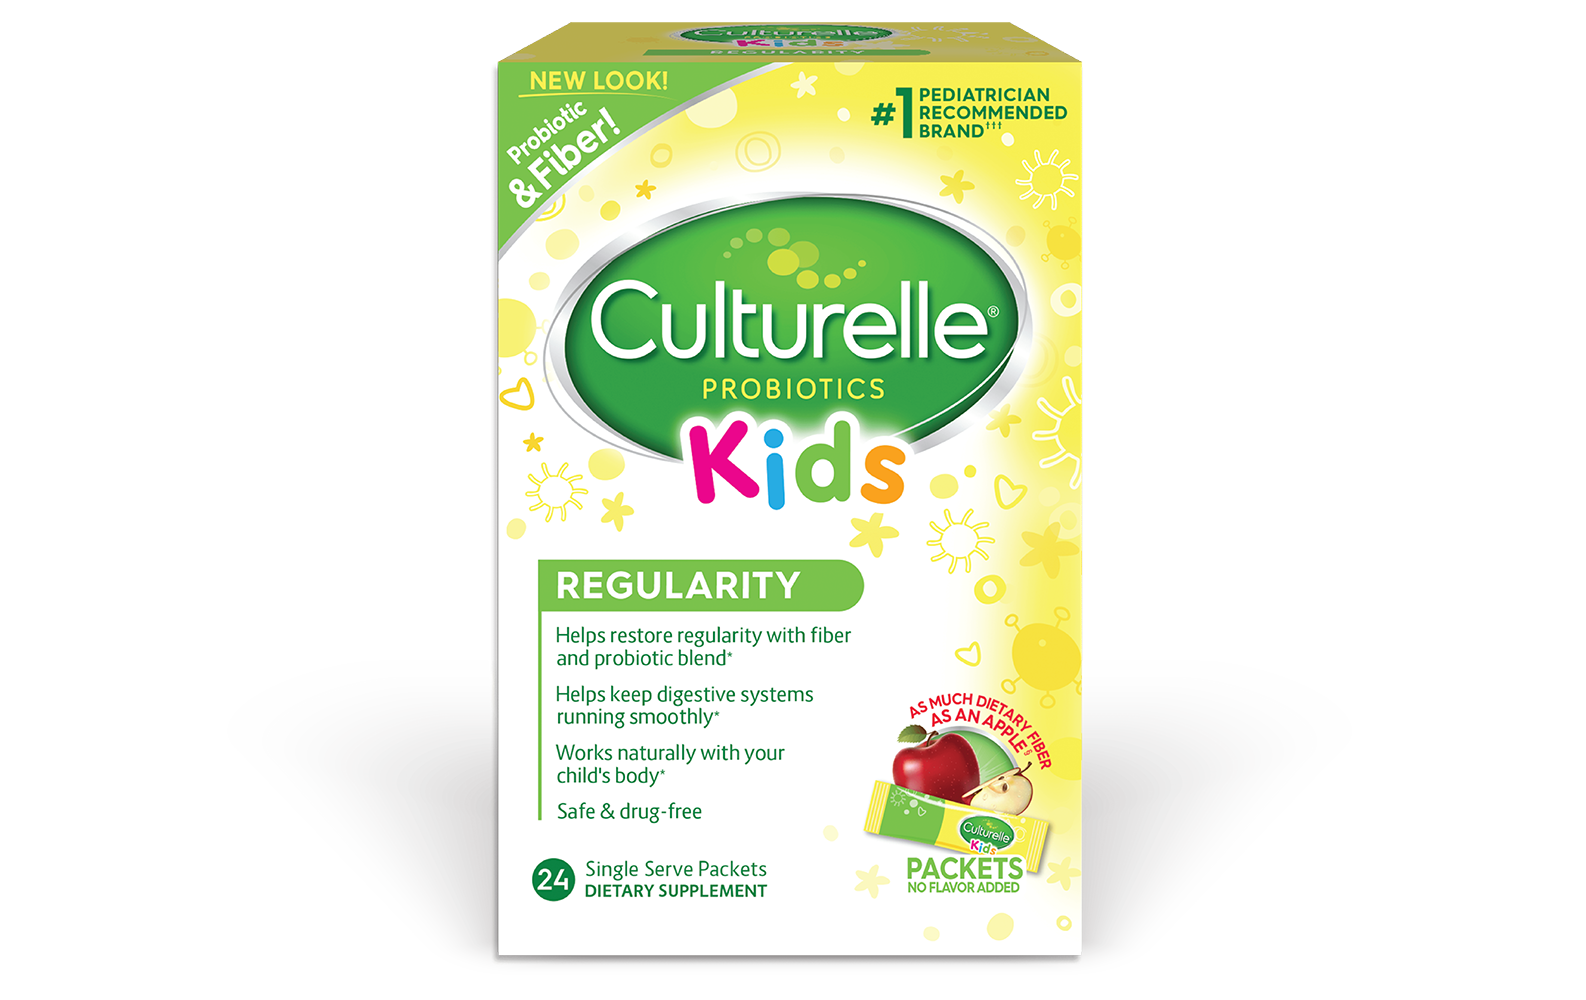 Kids Digestive Health And Regularity Culturelle 174